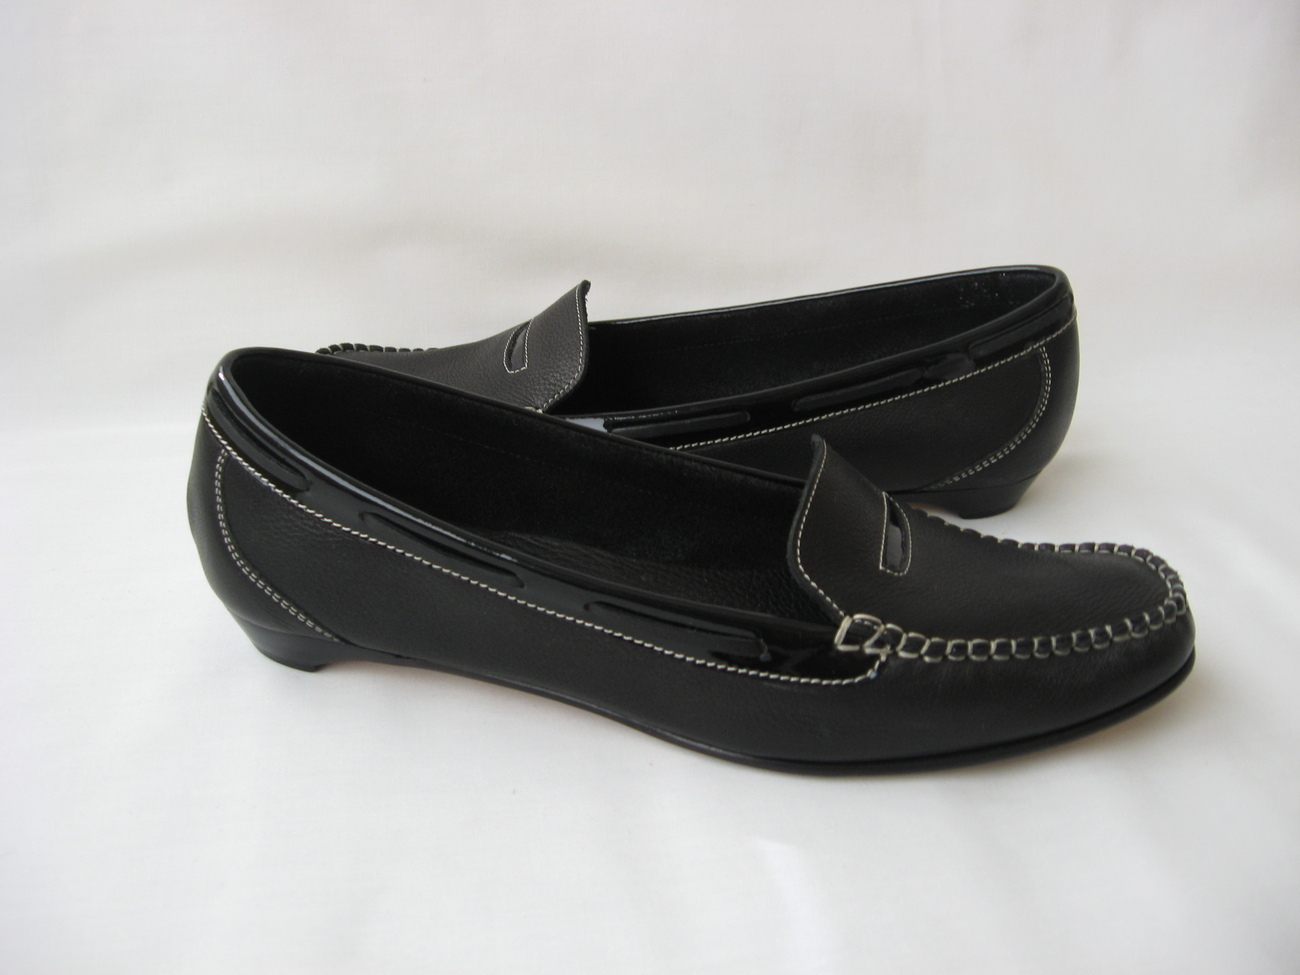 Cole_haan_slip_on_shoes_leather_black